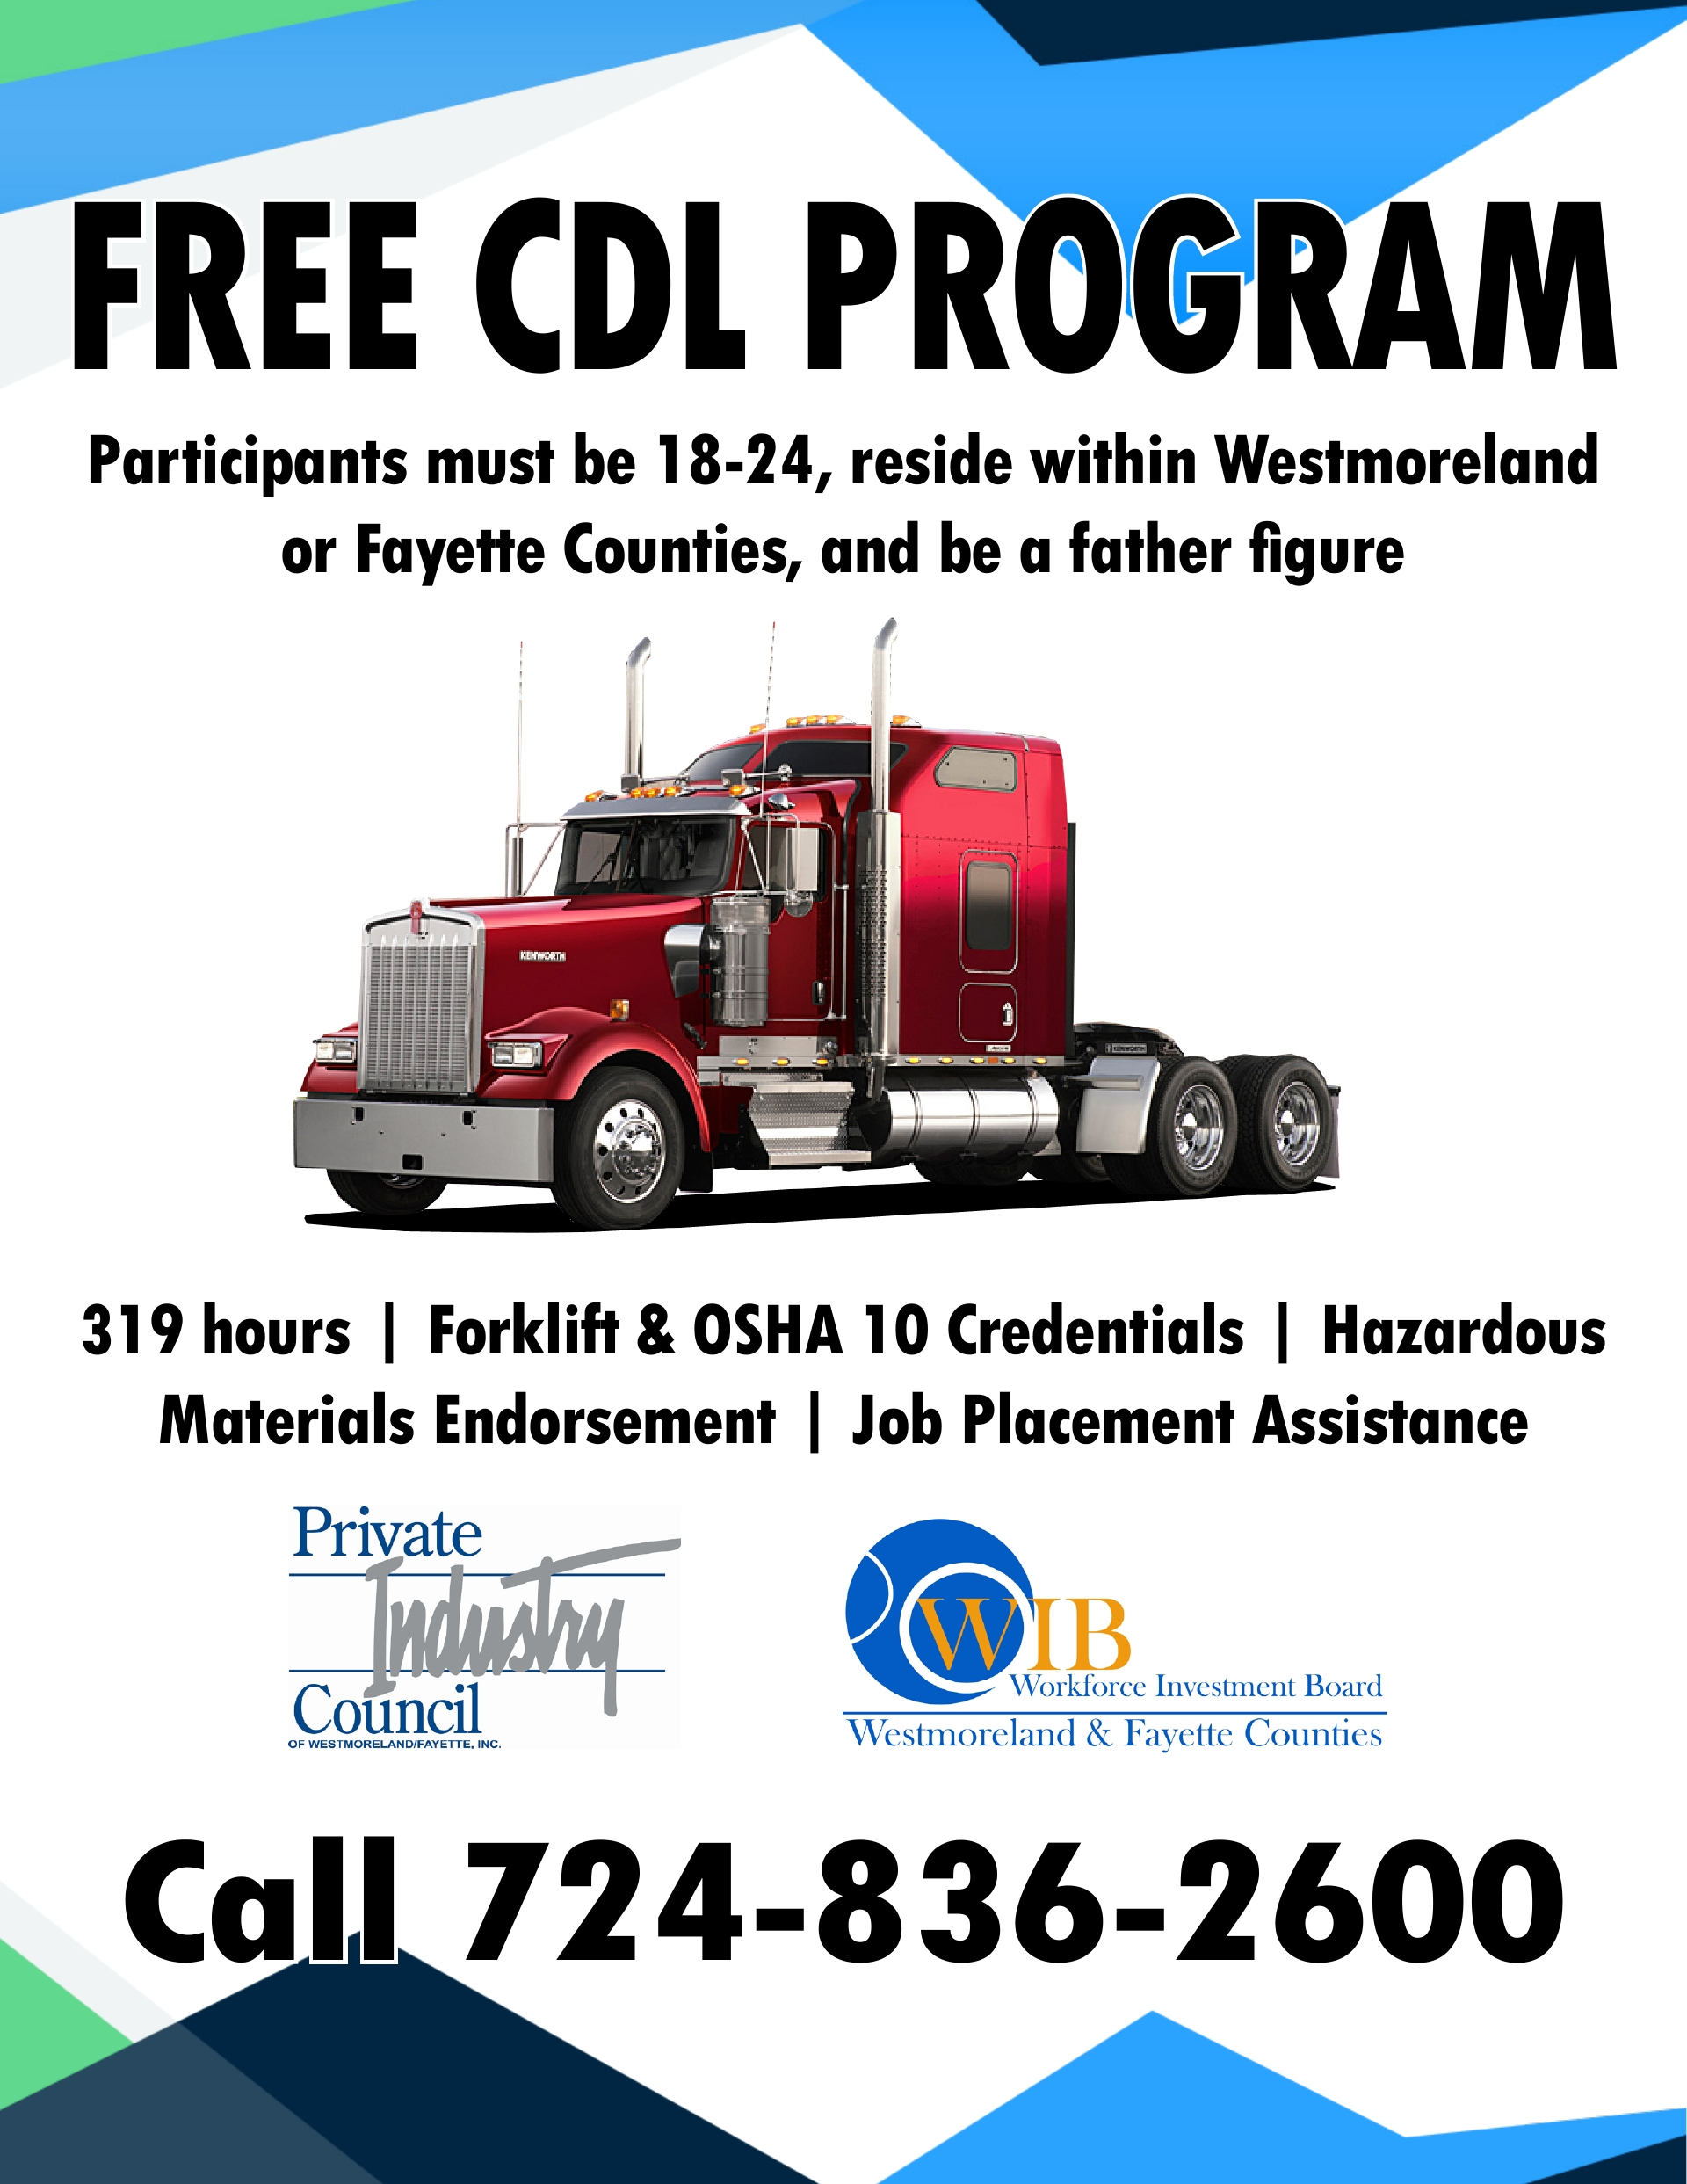 FREE CDL PROGRAM in Westmoreland County Father Figures ages 18 to 24